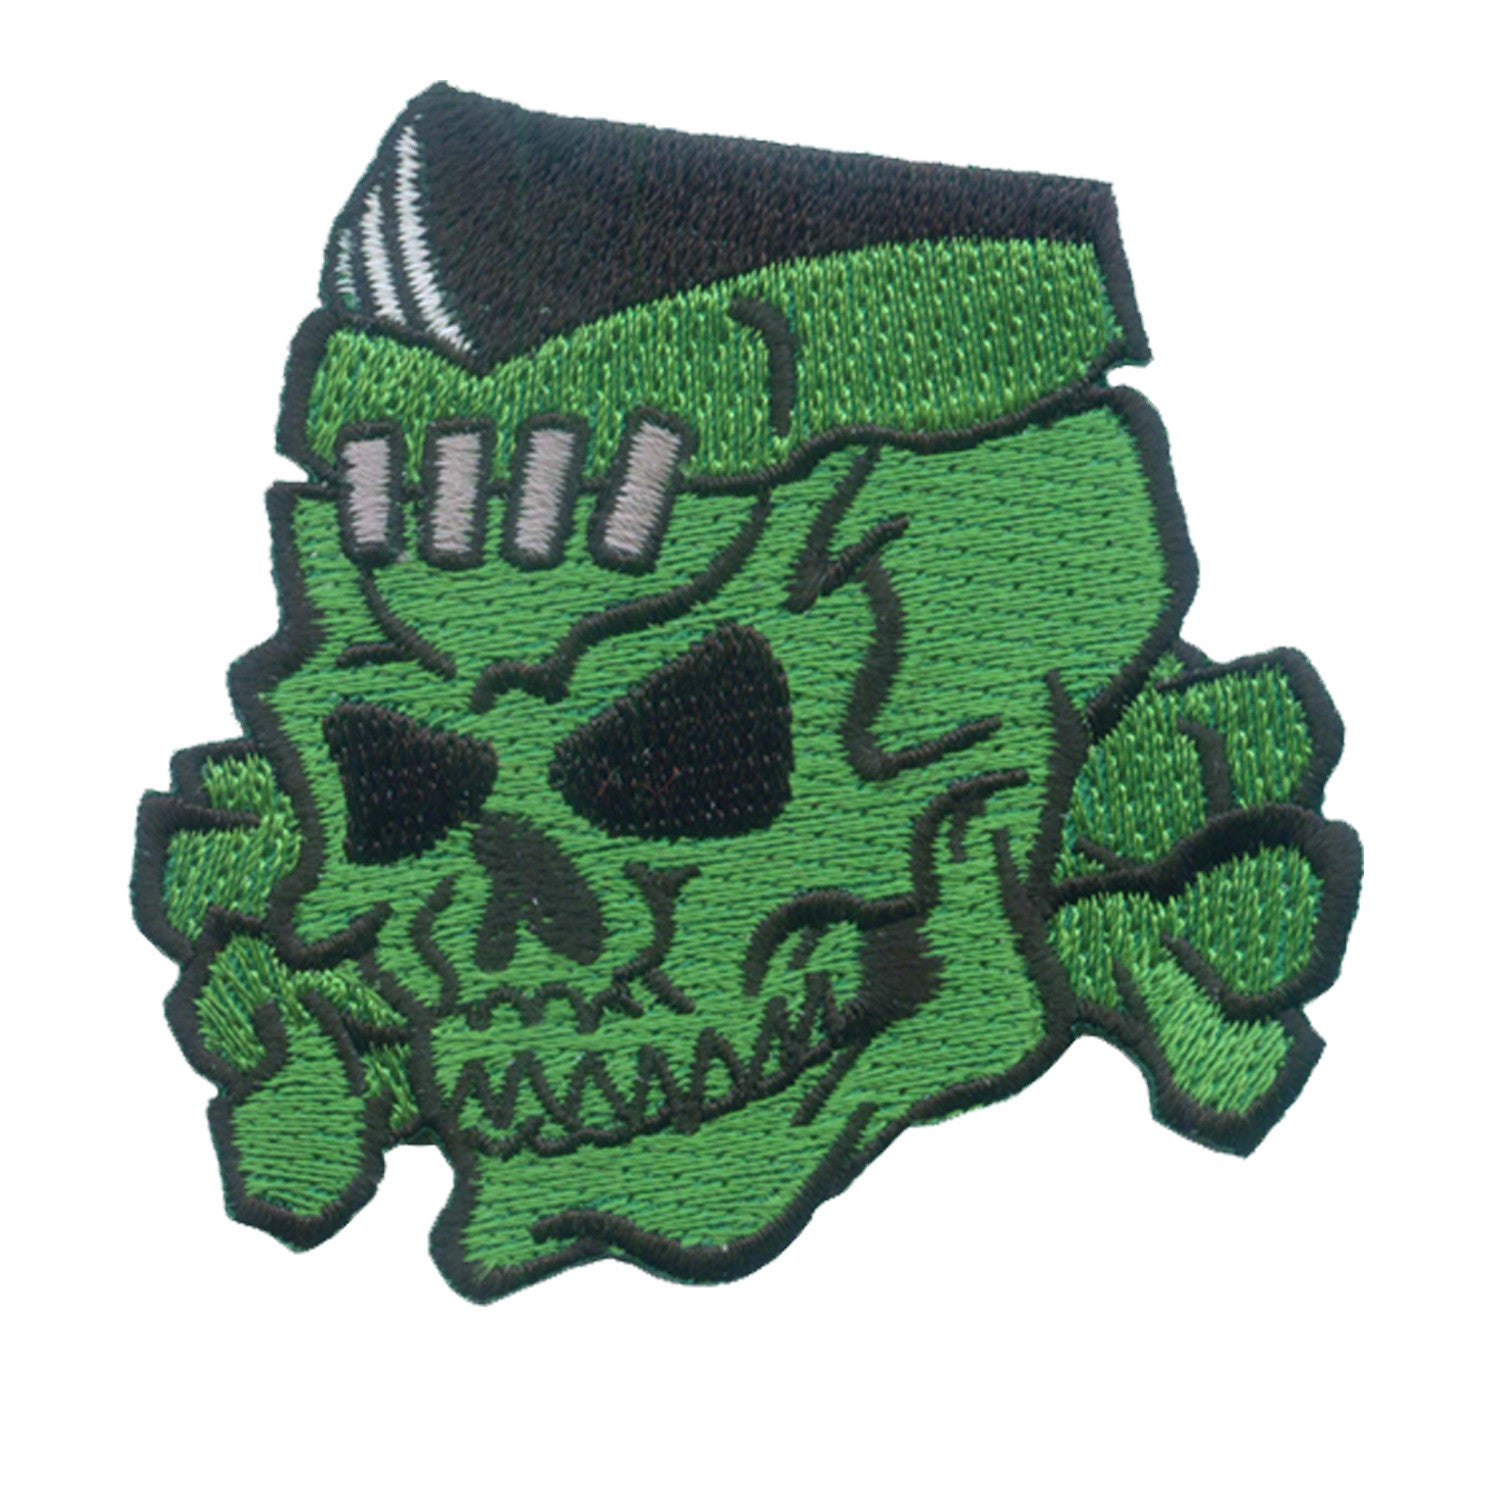 Psycho Stitched Skull Patch